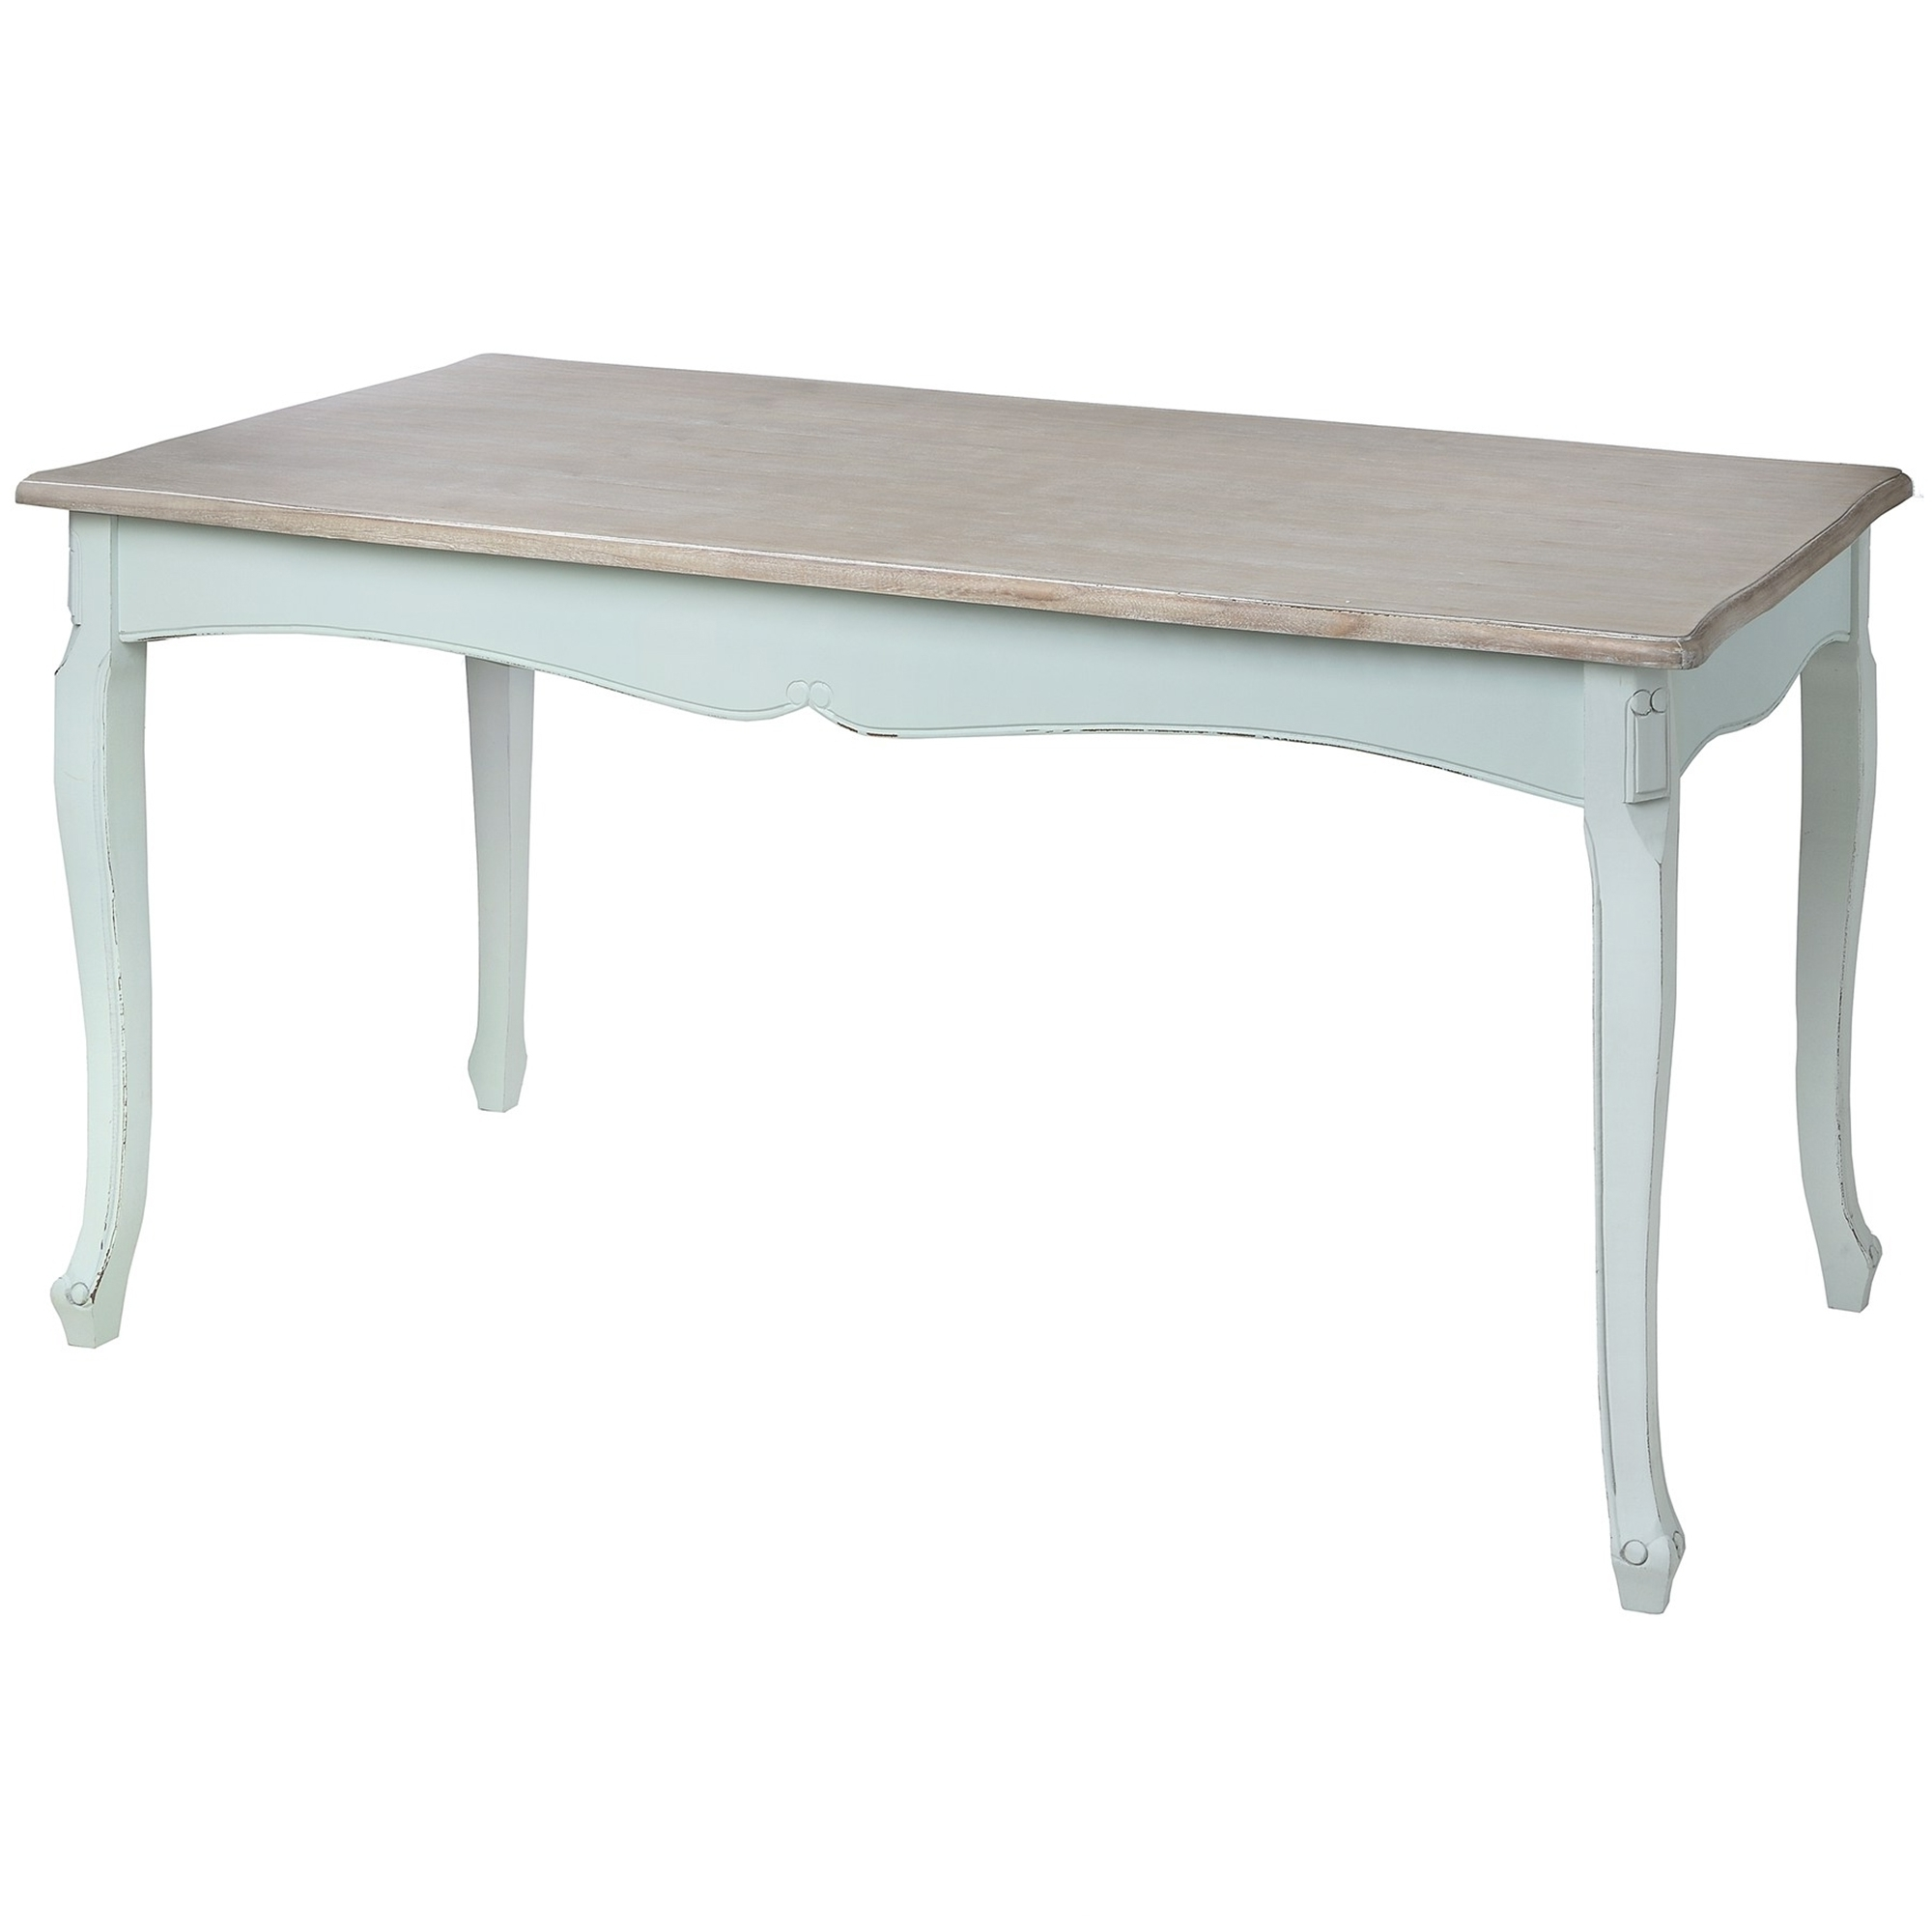 French Chic Dining Tables Throughout Widely Used Duck Egg Shabby Chic Dining Table (View 9 of 25)